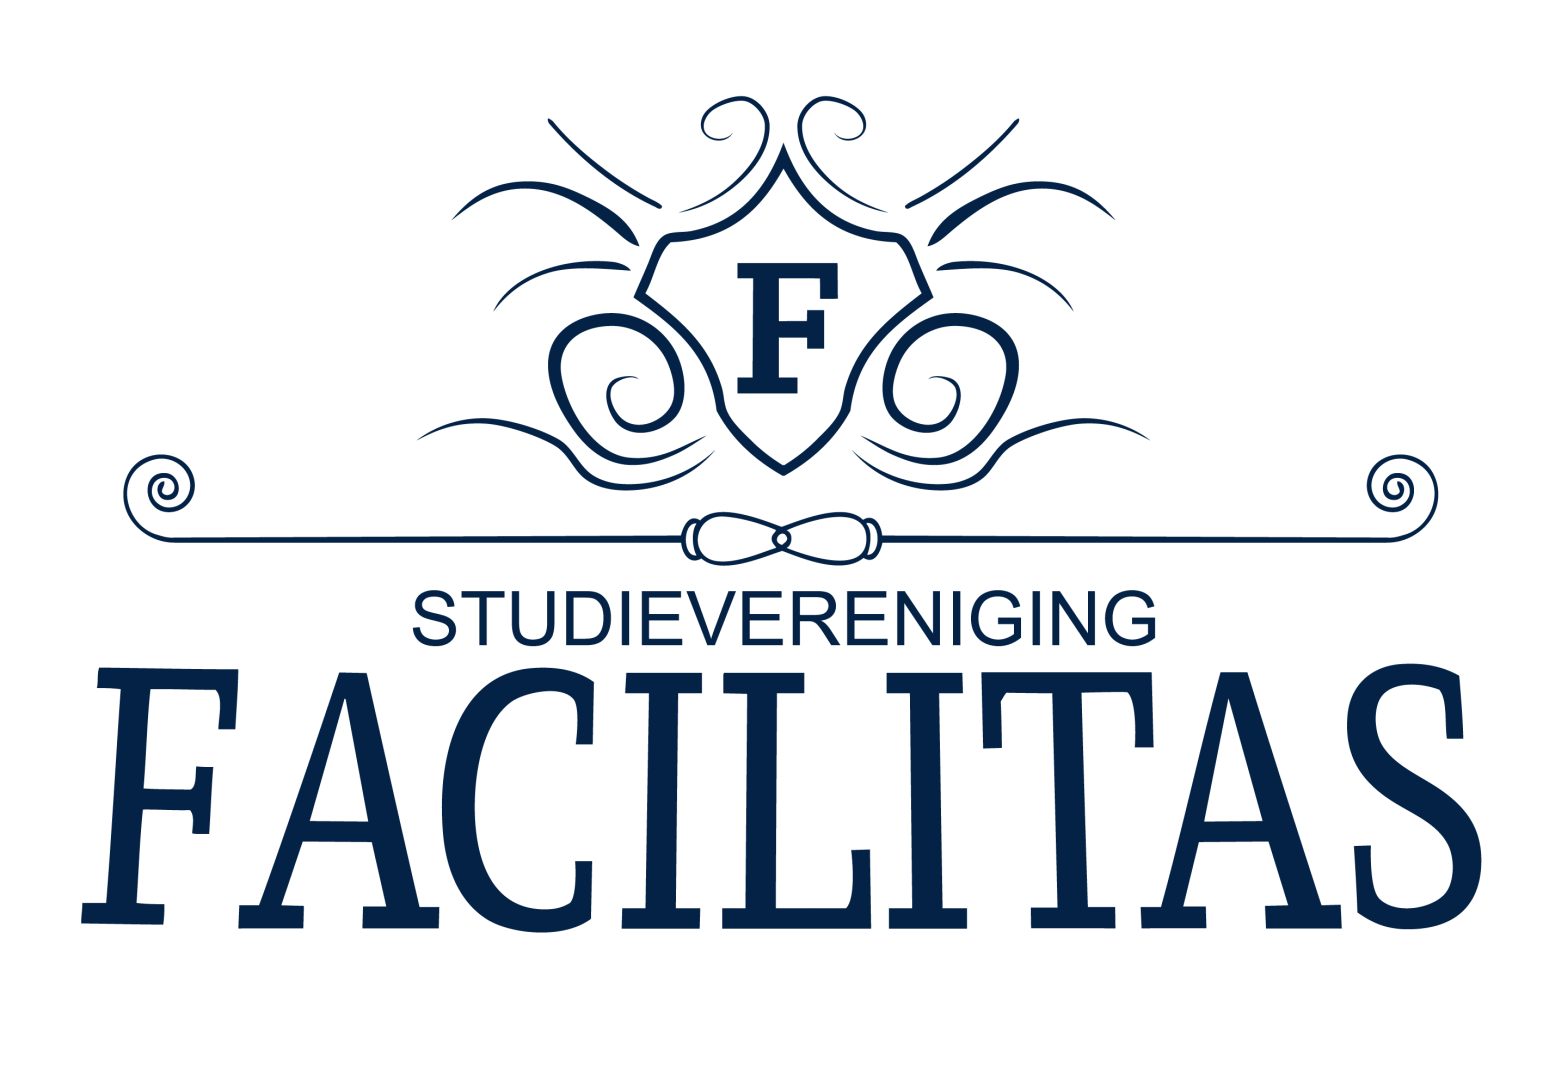 Studievereniging Facilitas